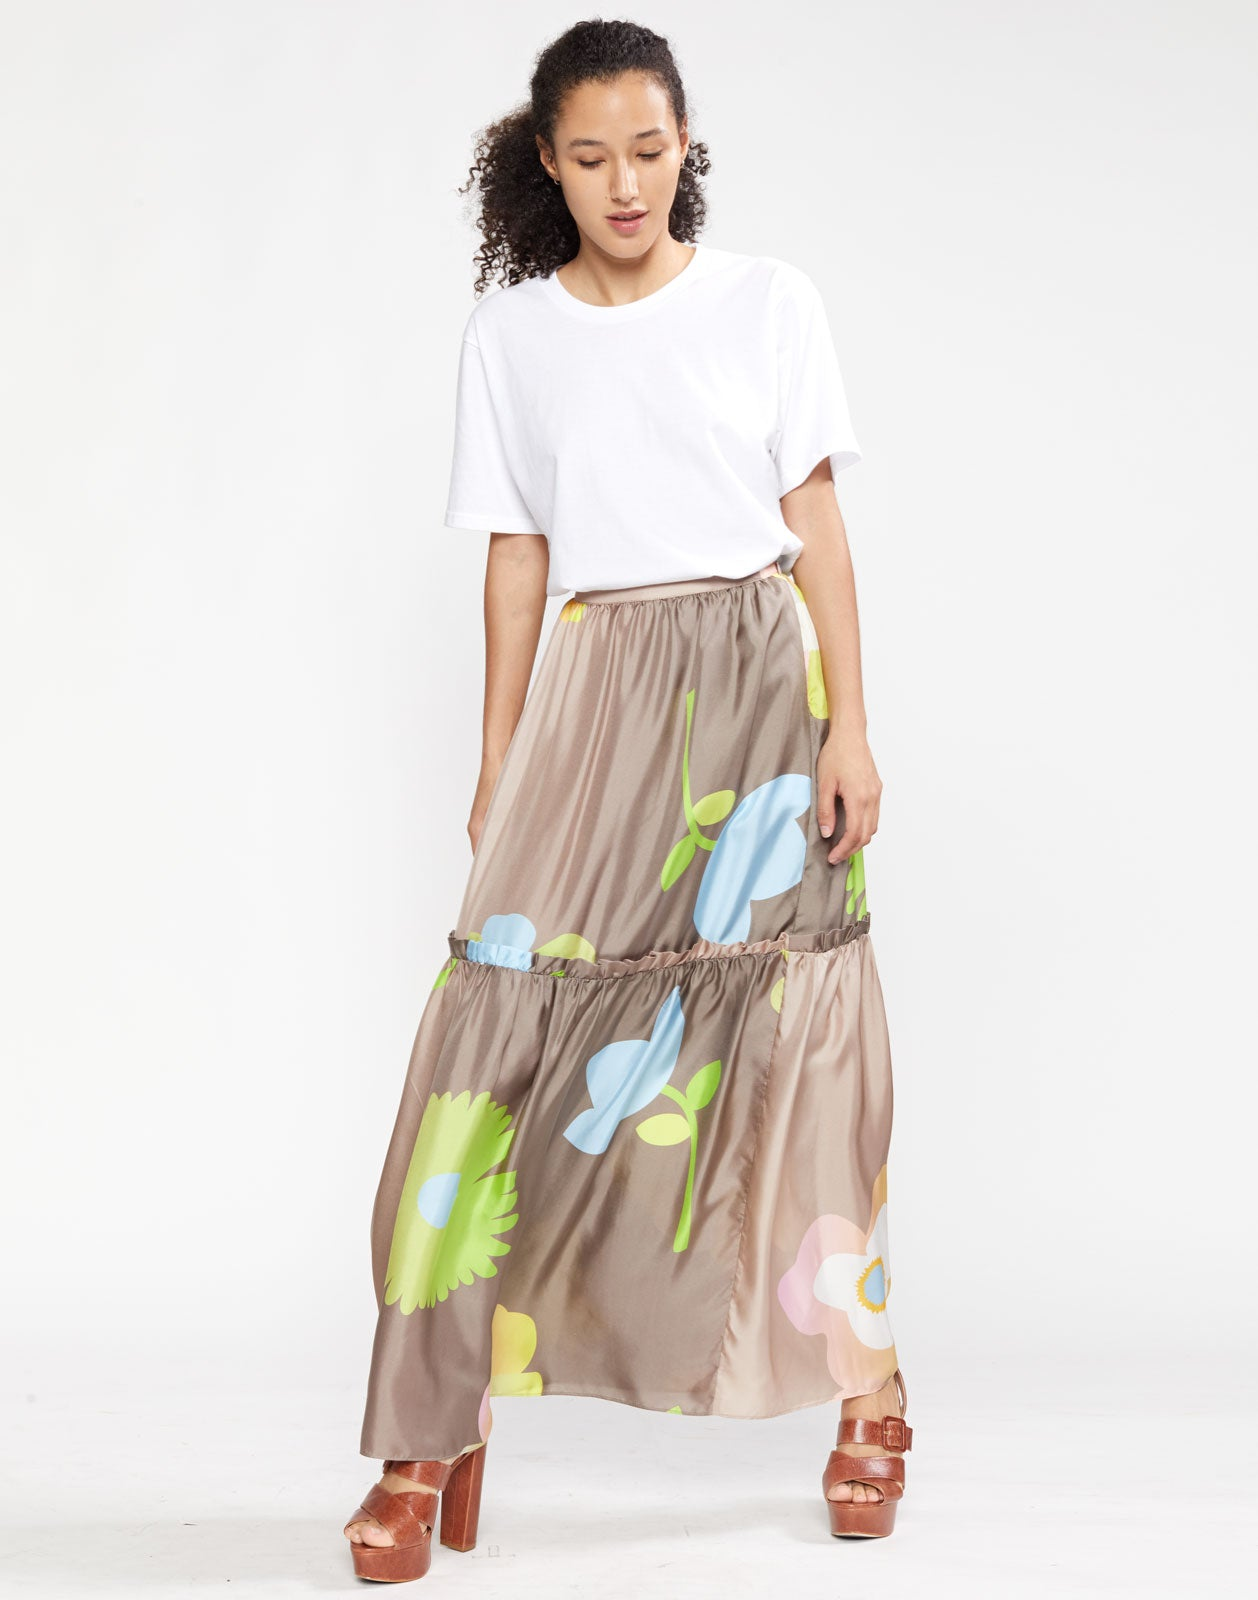 Ashley Pop Floral Long Skirt